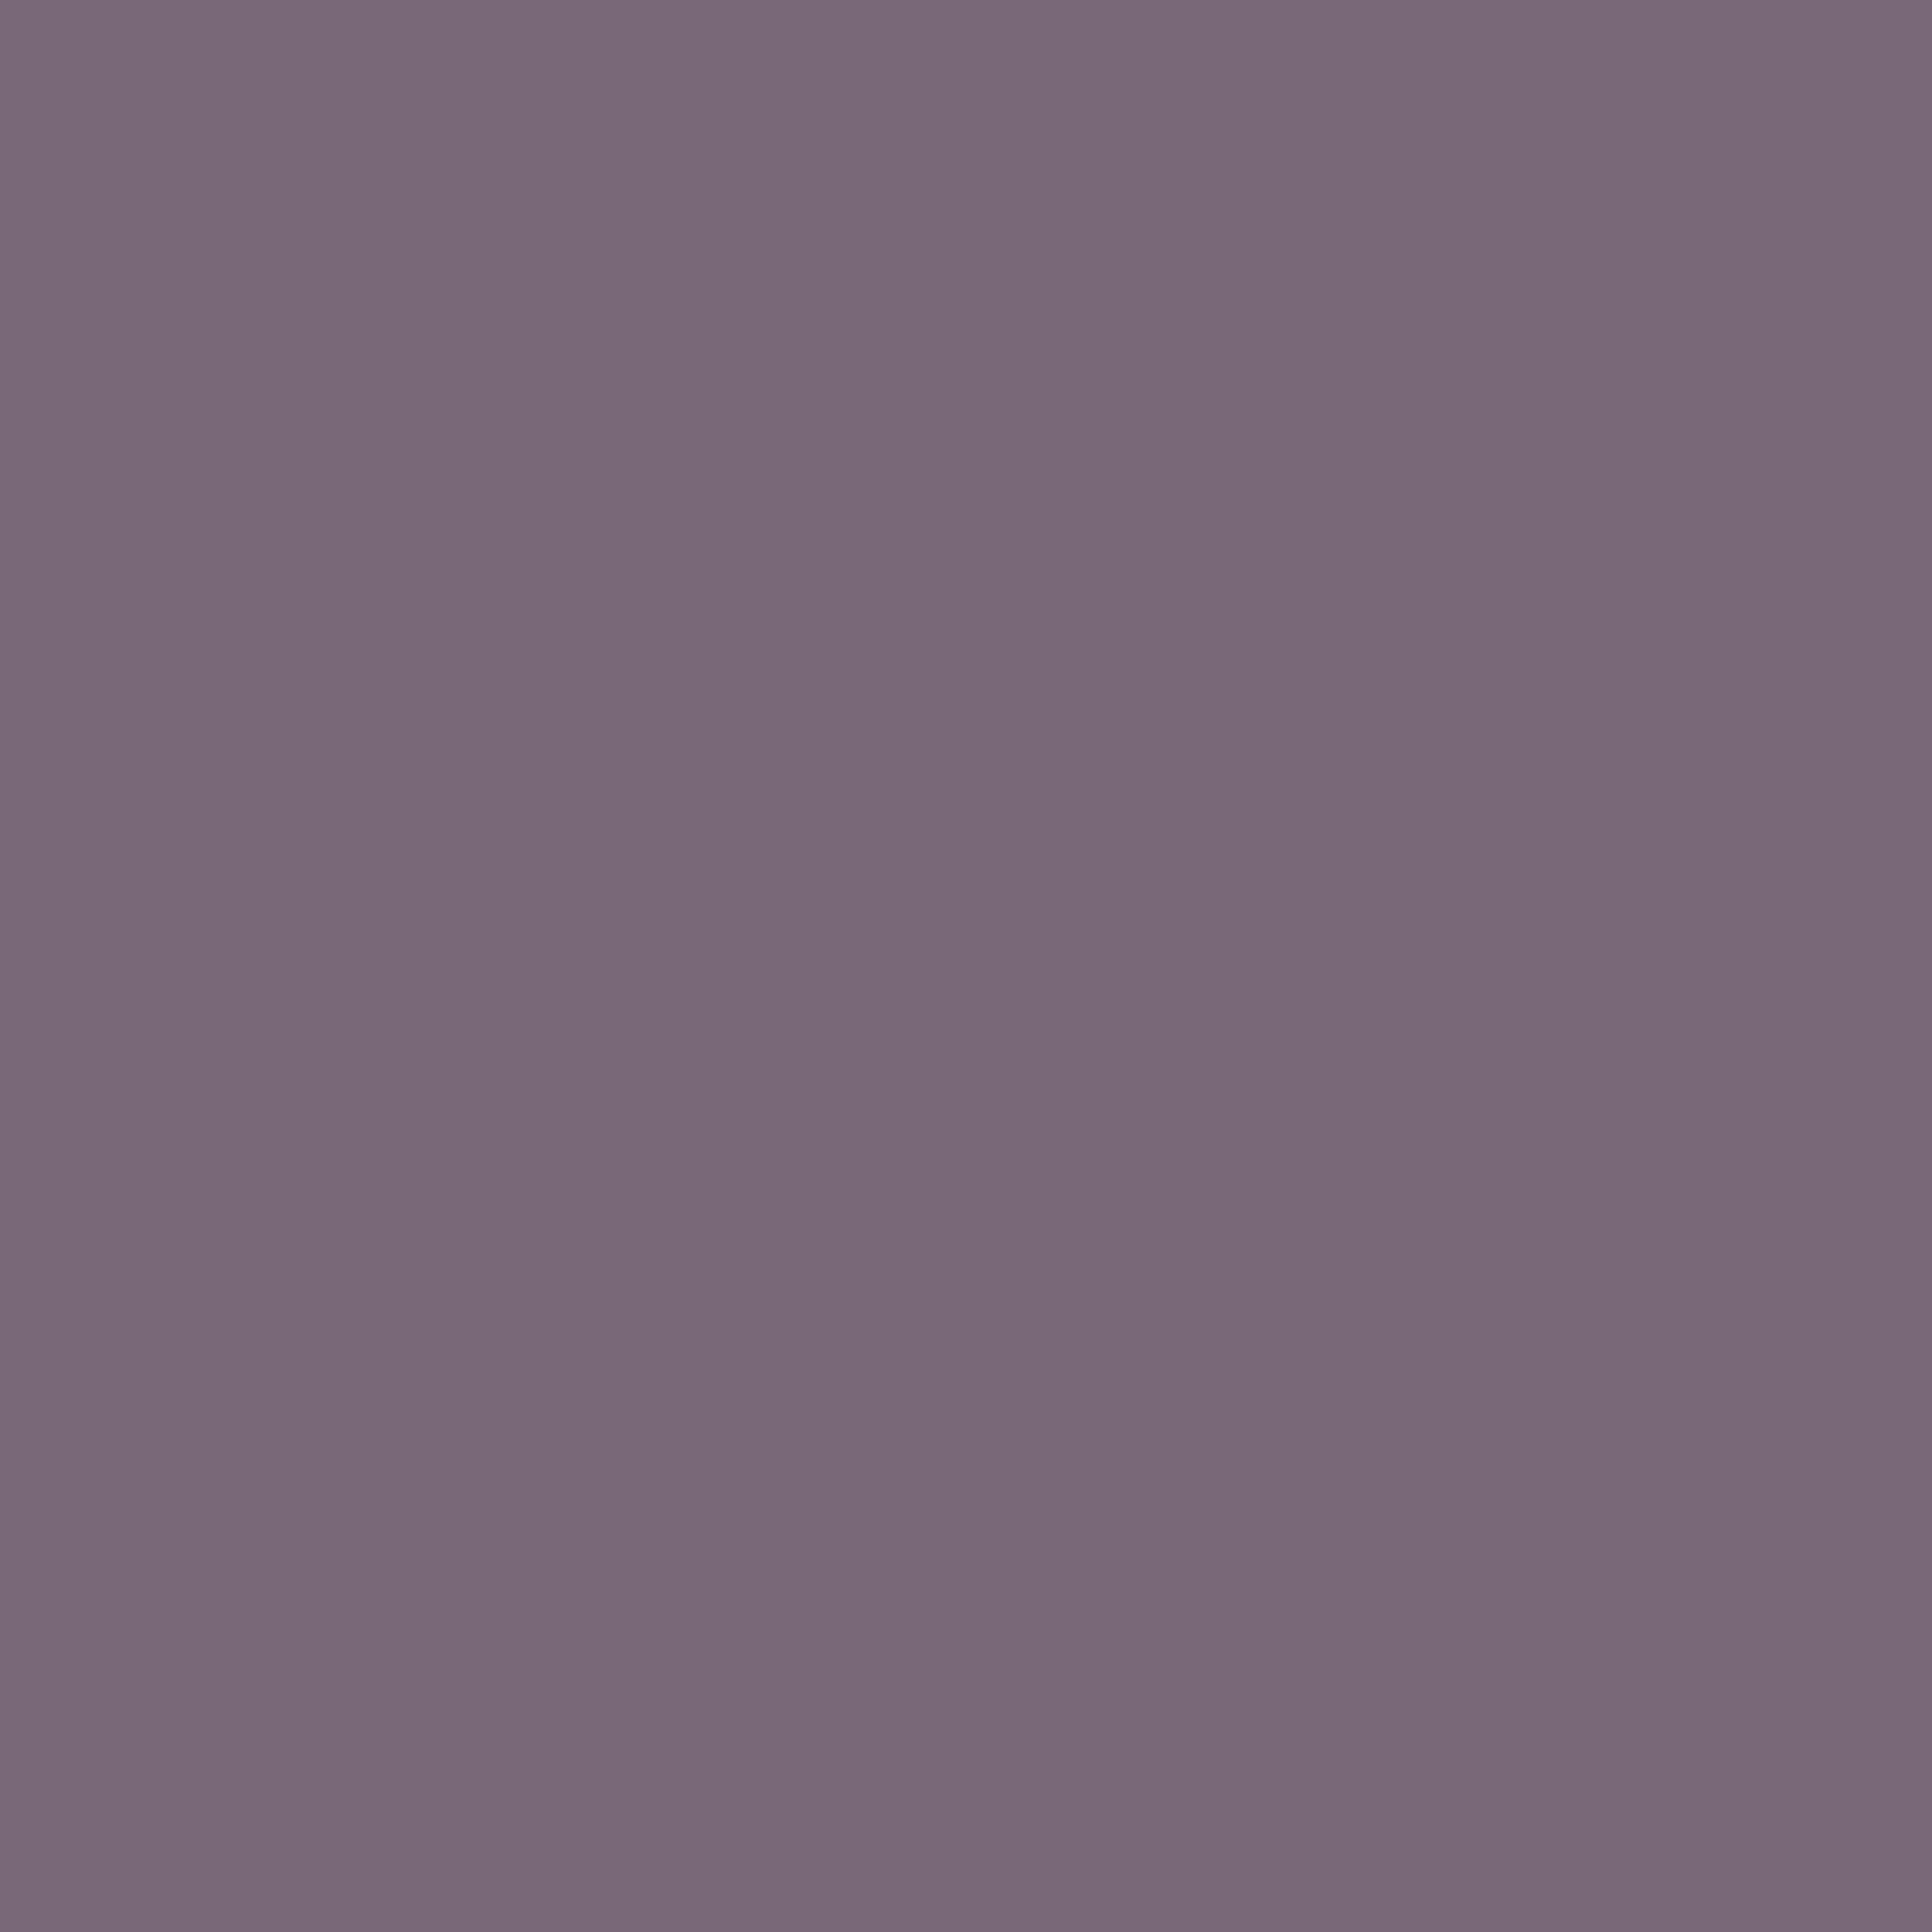 3600x3600 Old Lavender Solid Color Background